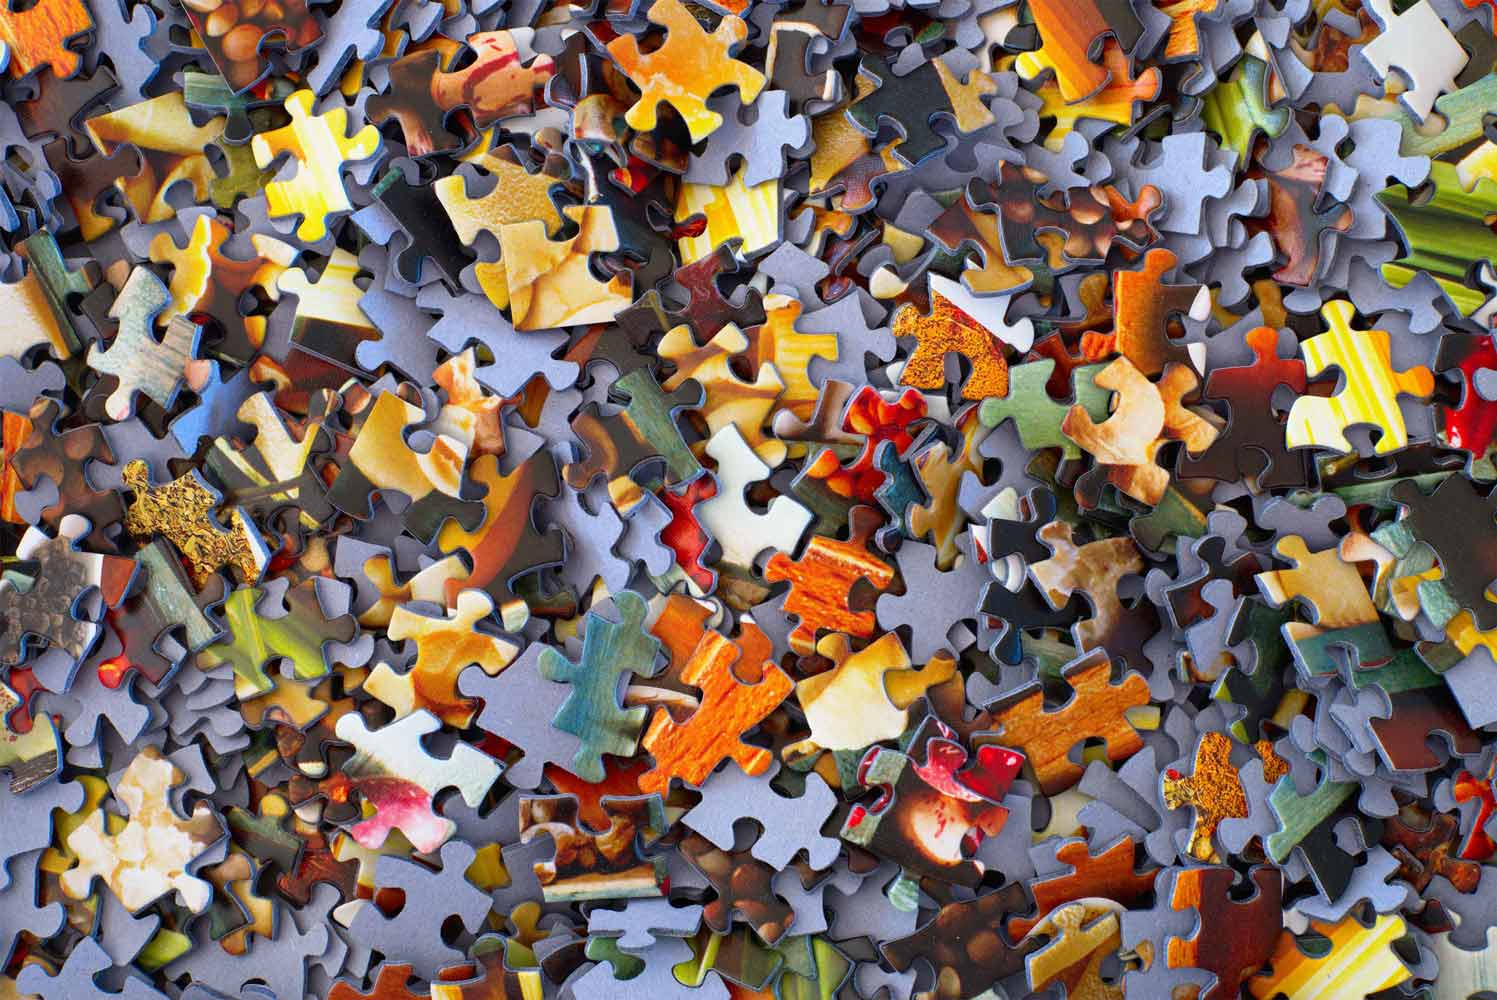 puzzles pieces all over a table